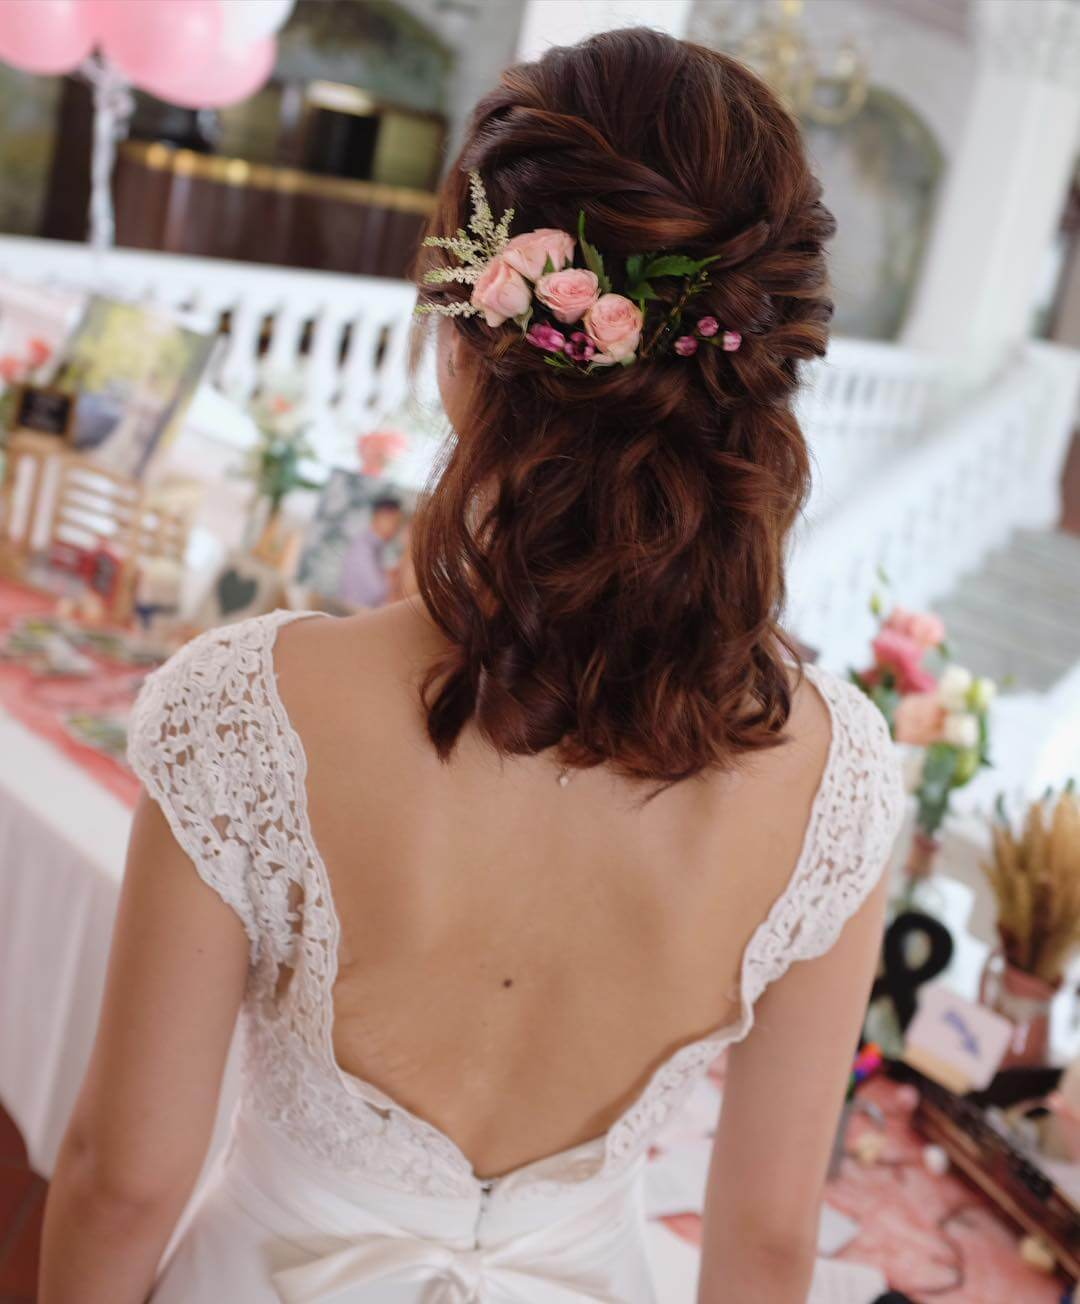 Wedding Styles: 25+ Curly Wedding Hairstyle Ideas, Designs